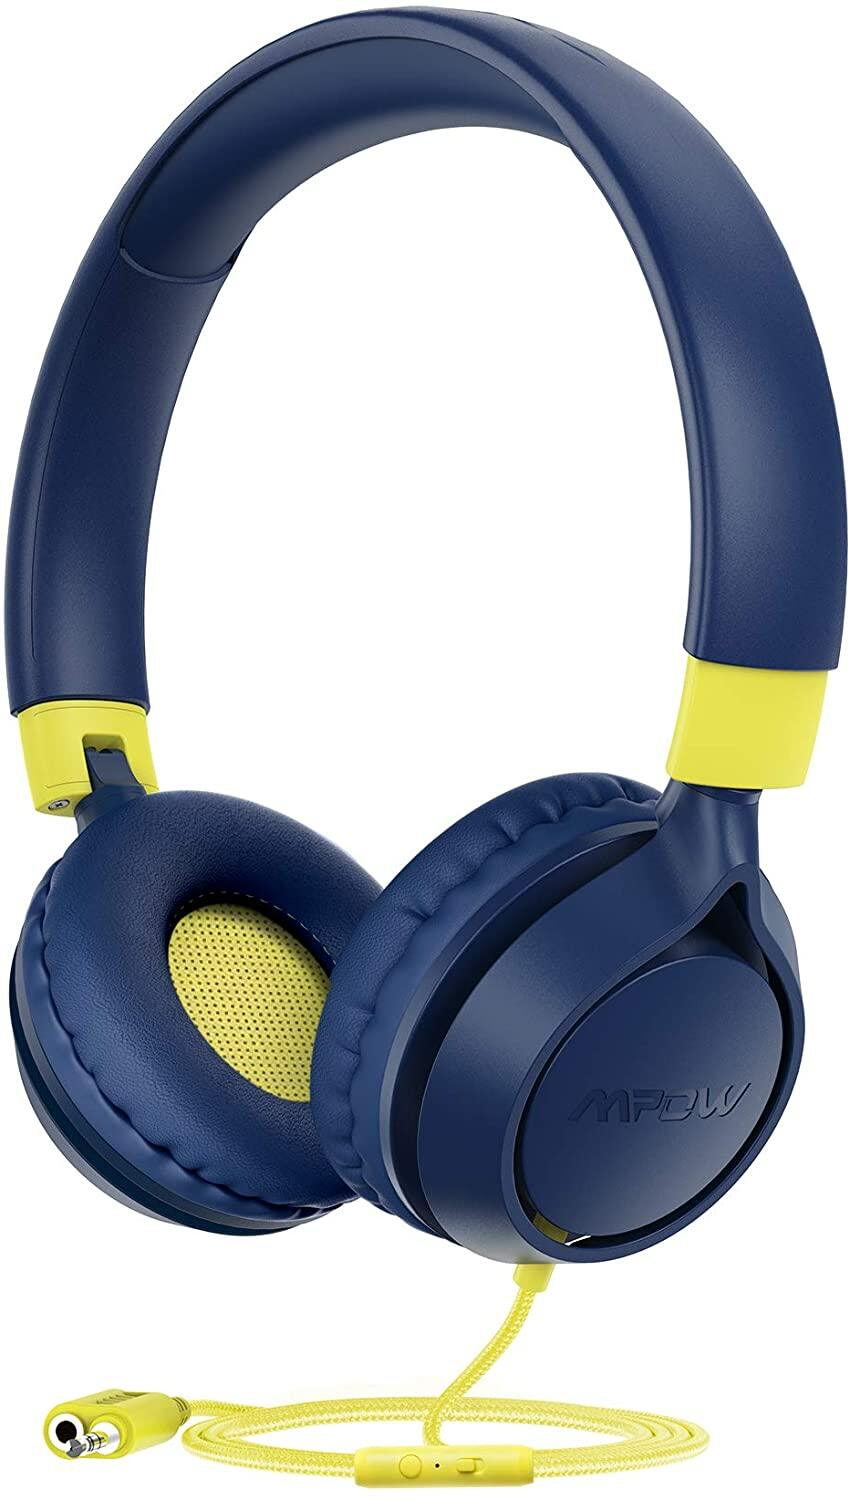 [ NEW ARRIVAL ] Mpow CHE1 Pro Kids Headphones with Microphone, Volume-Limiting 85/94dB Headphones for Kids, Wired Foldable Headsets with Audio Sharing for Study, Online Course, Travel, PC, Cellphones